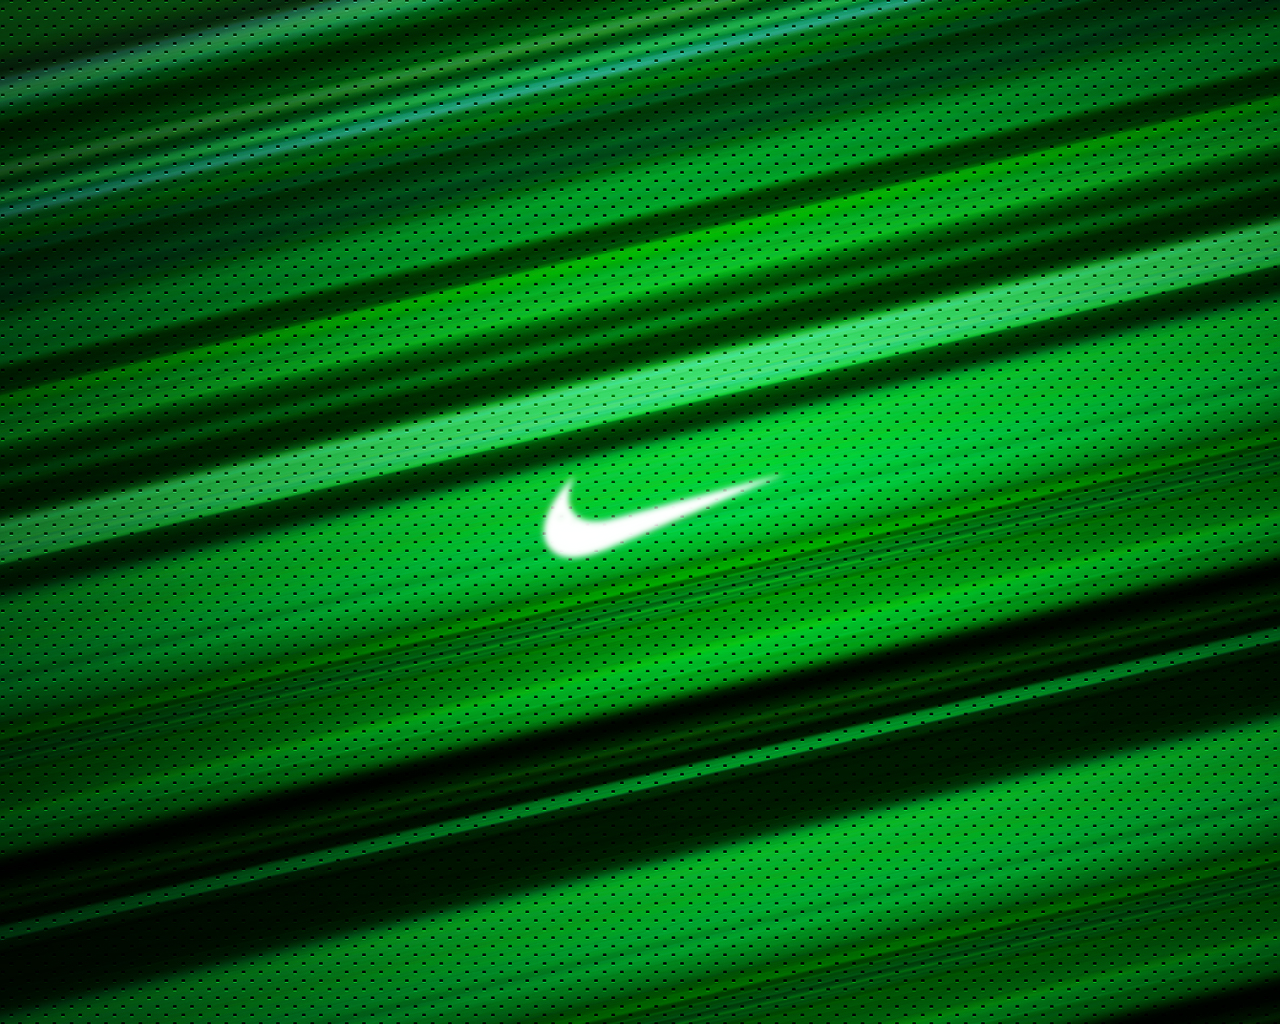 nike ultimate green wallpaper by opium fan art wallpaper other 2008 1280x1024